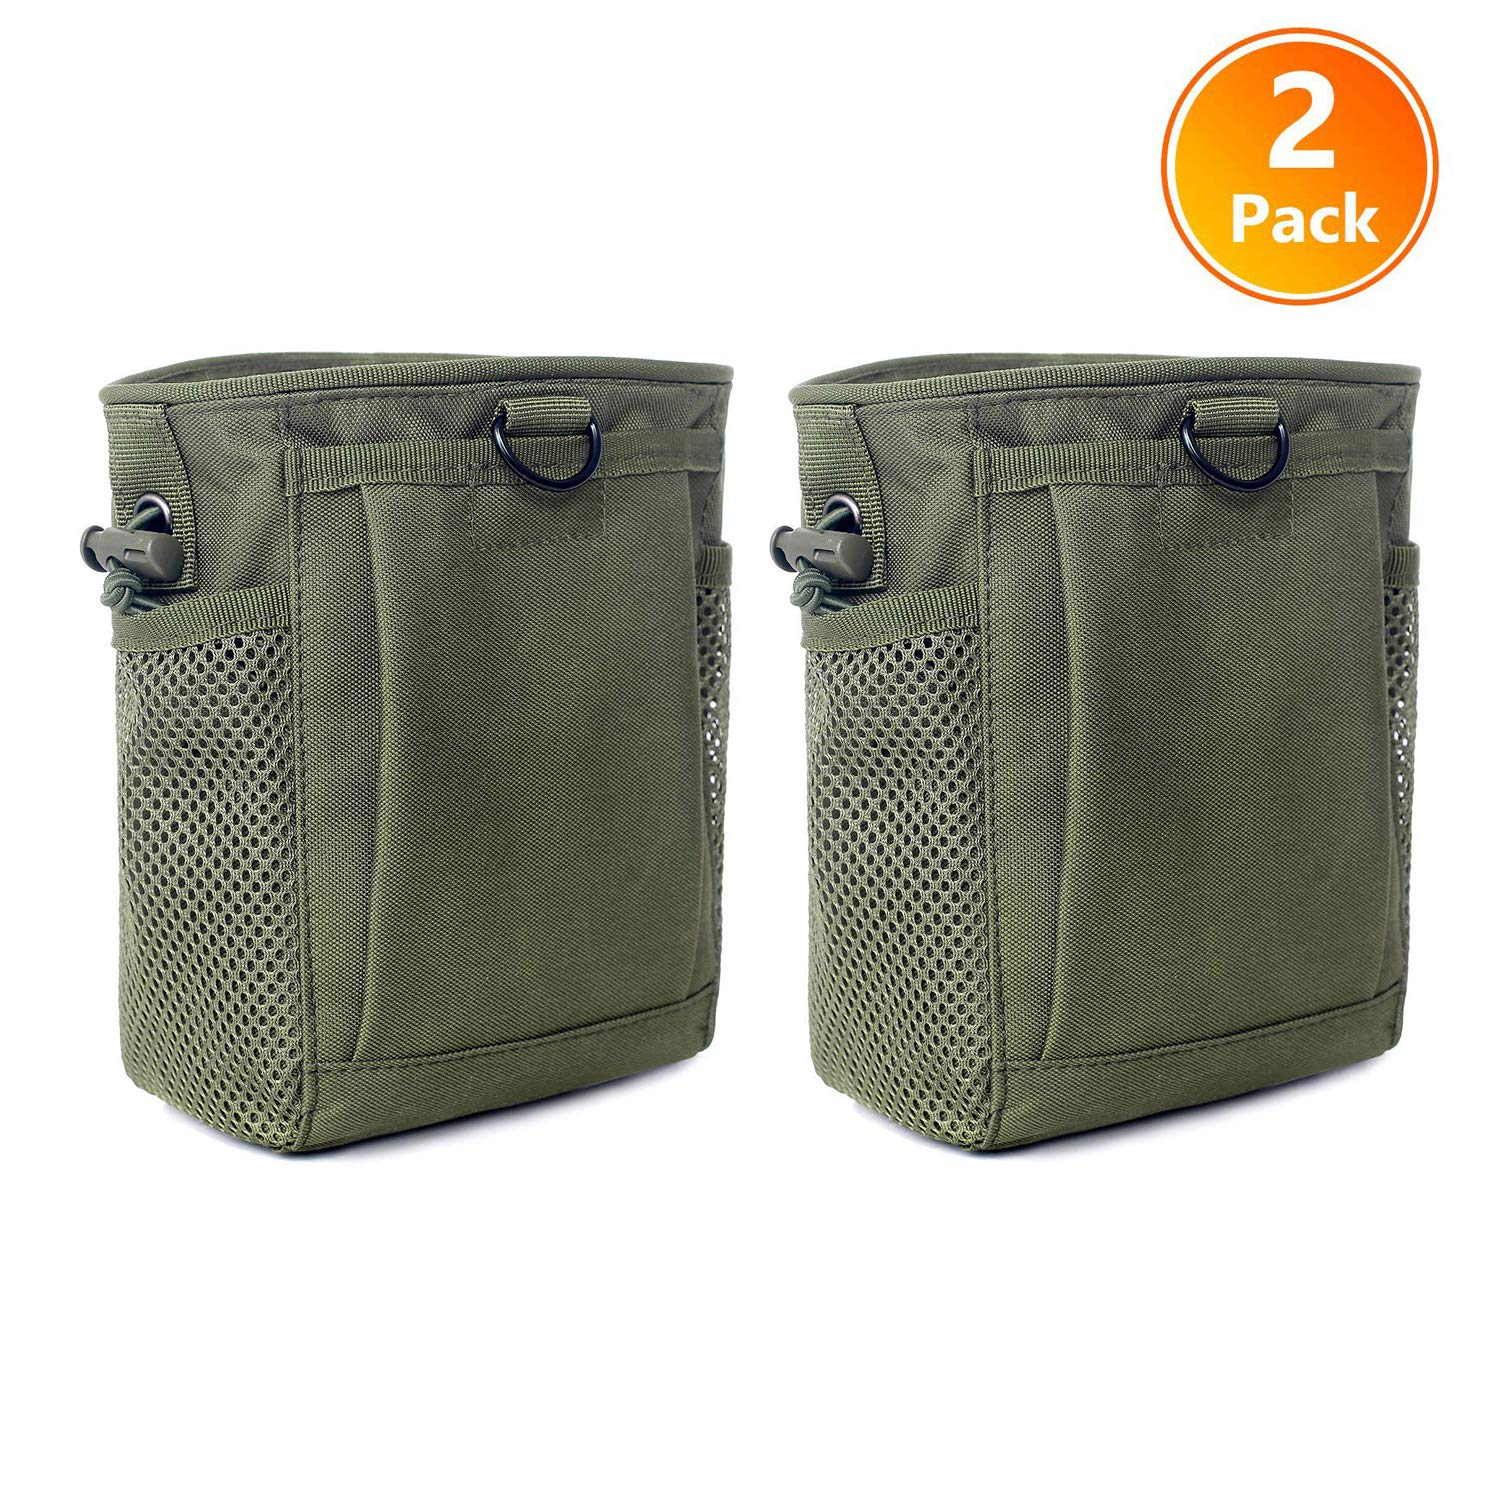 72bf325504e4 Tactical Molle Drawstring Magazine Dump Pouch, Adjustable Military Utility  Belt Fanny Hip Holster Bag Outdoor Ammo Pouch